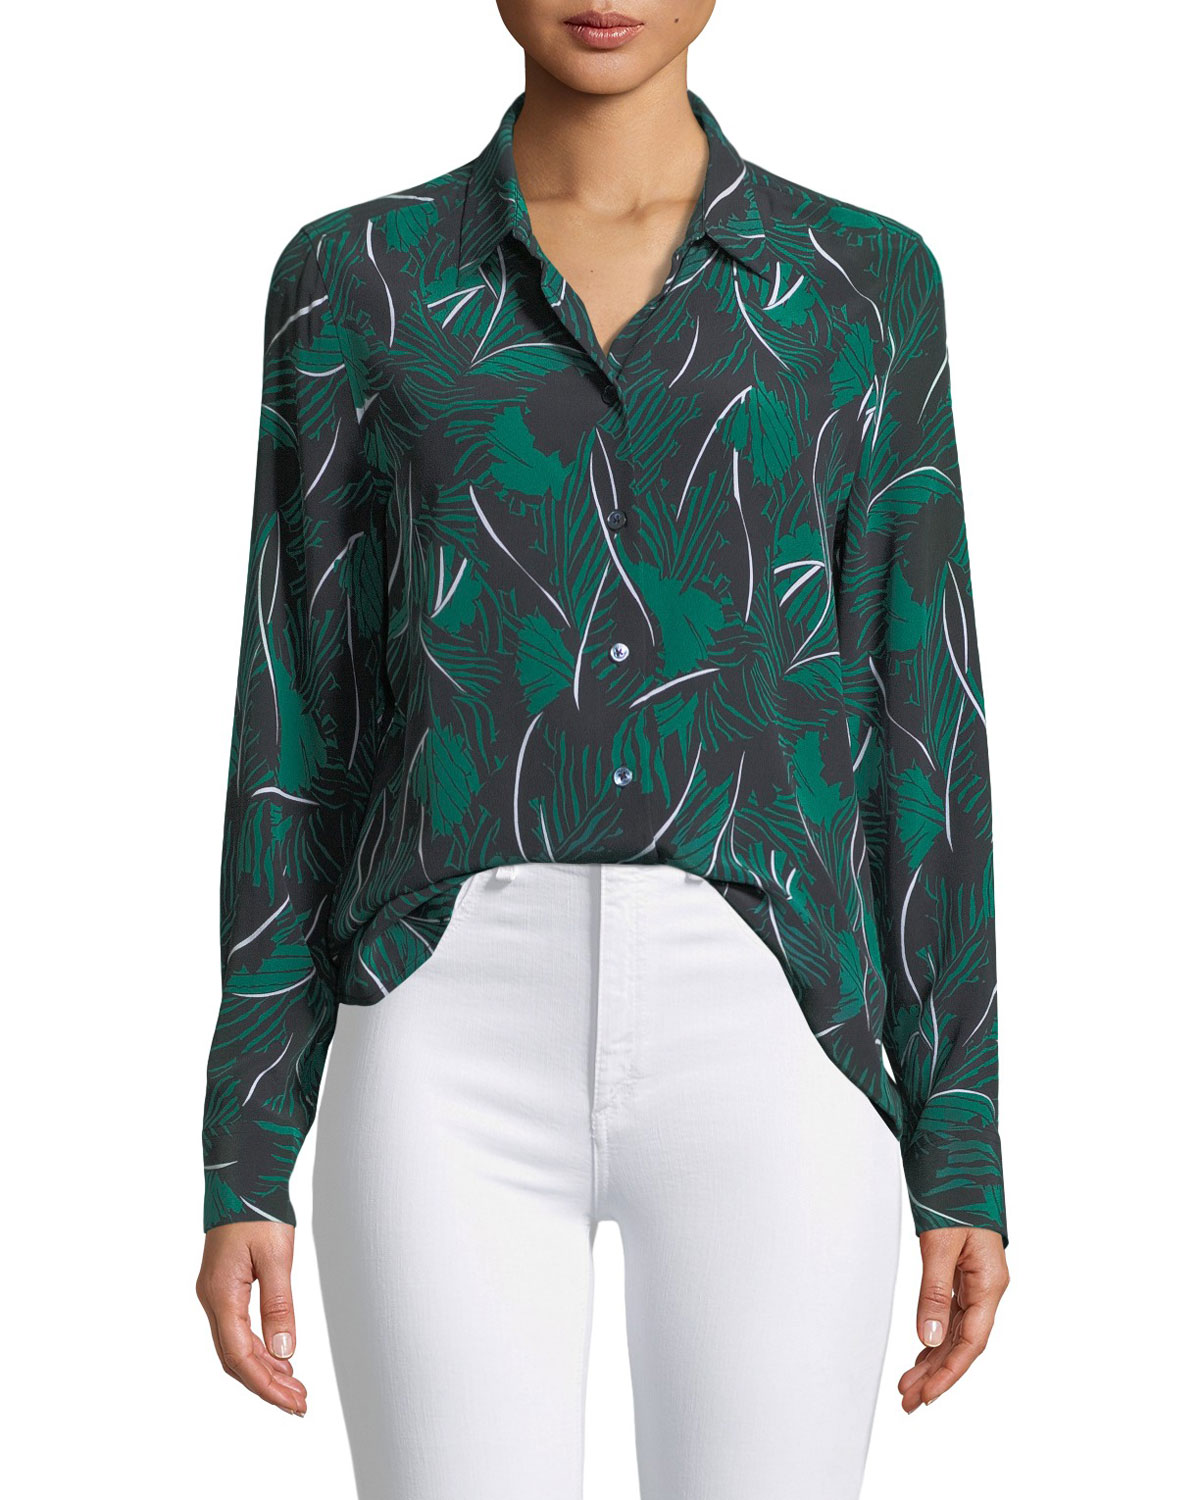 Equipment Essential Palm Leaf Print Silk Shirt Neiman Marcus